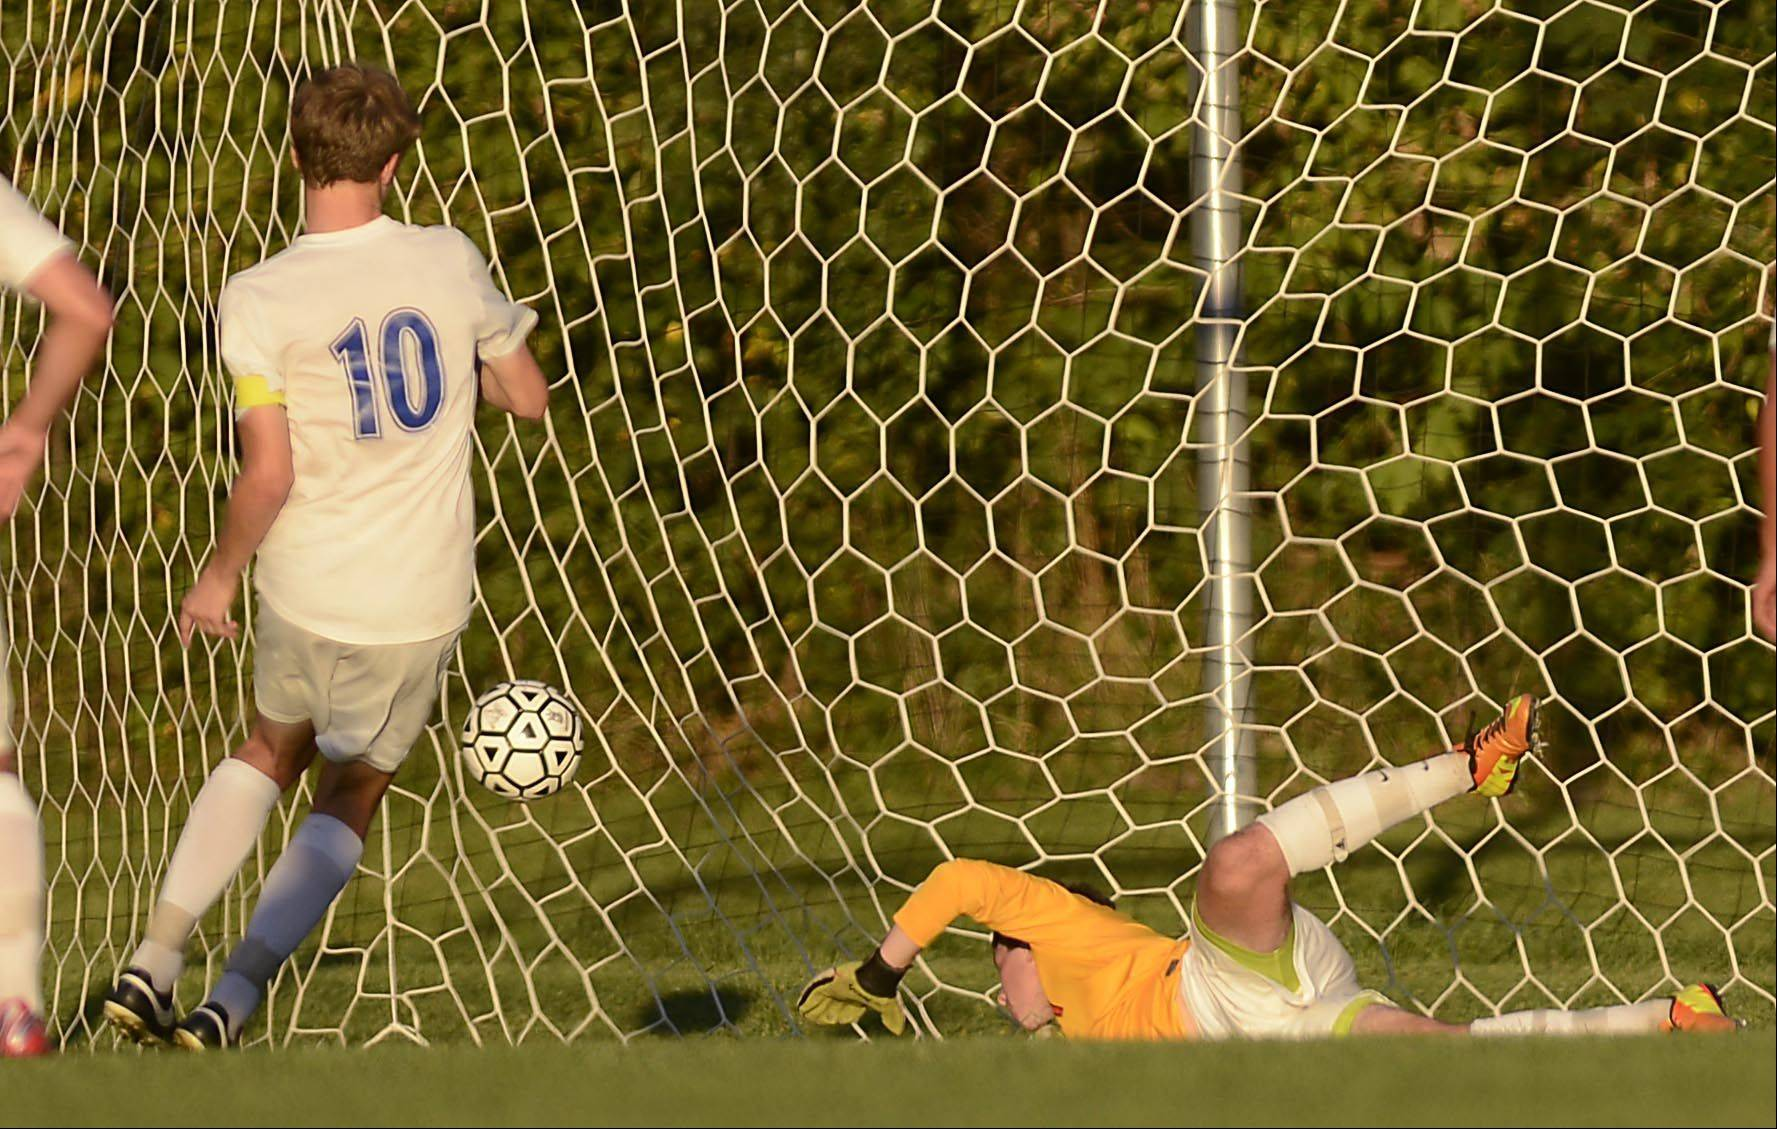 Dundee-Crown's Ben Stone scores the go-ahead, game-winning goal as Huntley goalkeeper Austen Emery dives for the ball Tuesday in Carpentersville.